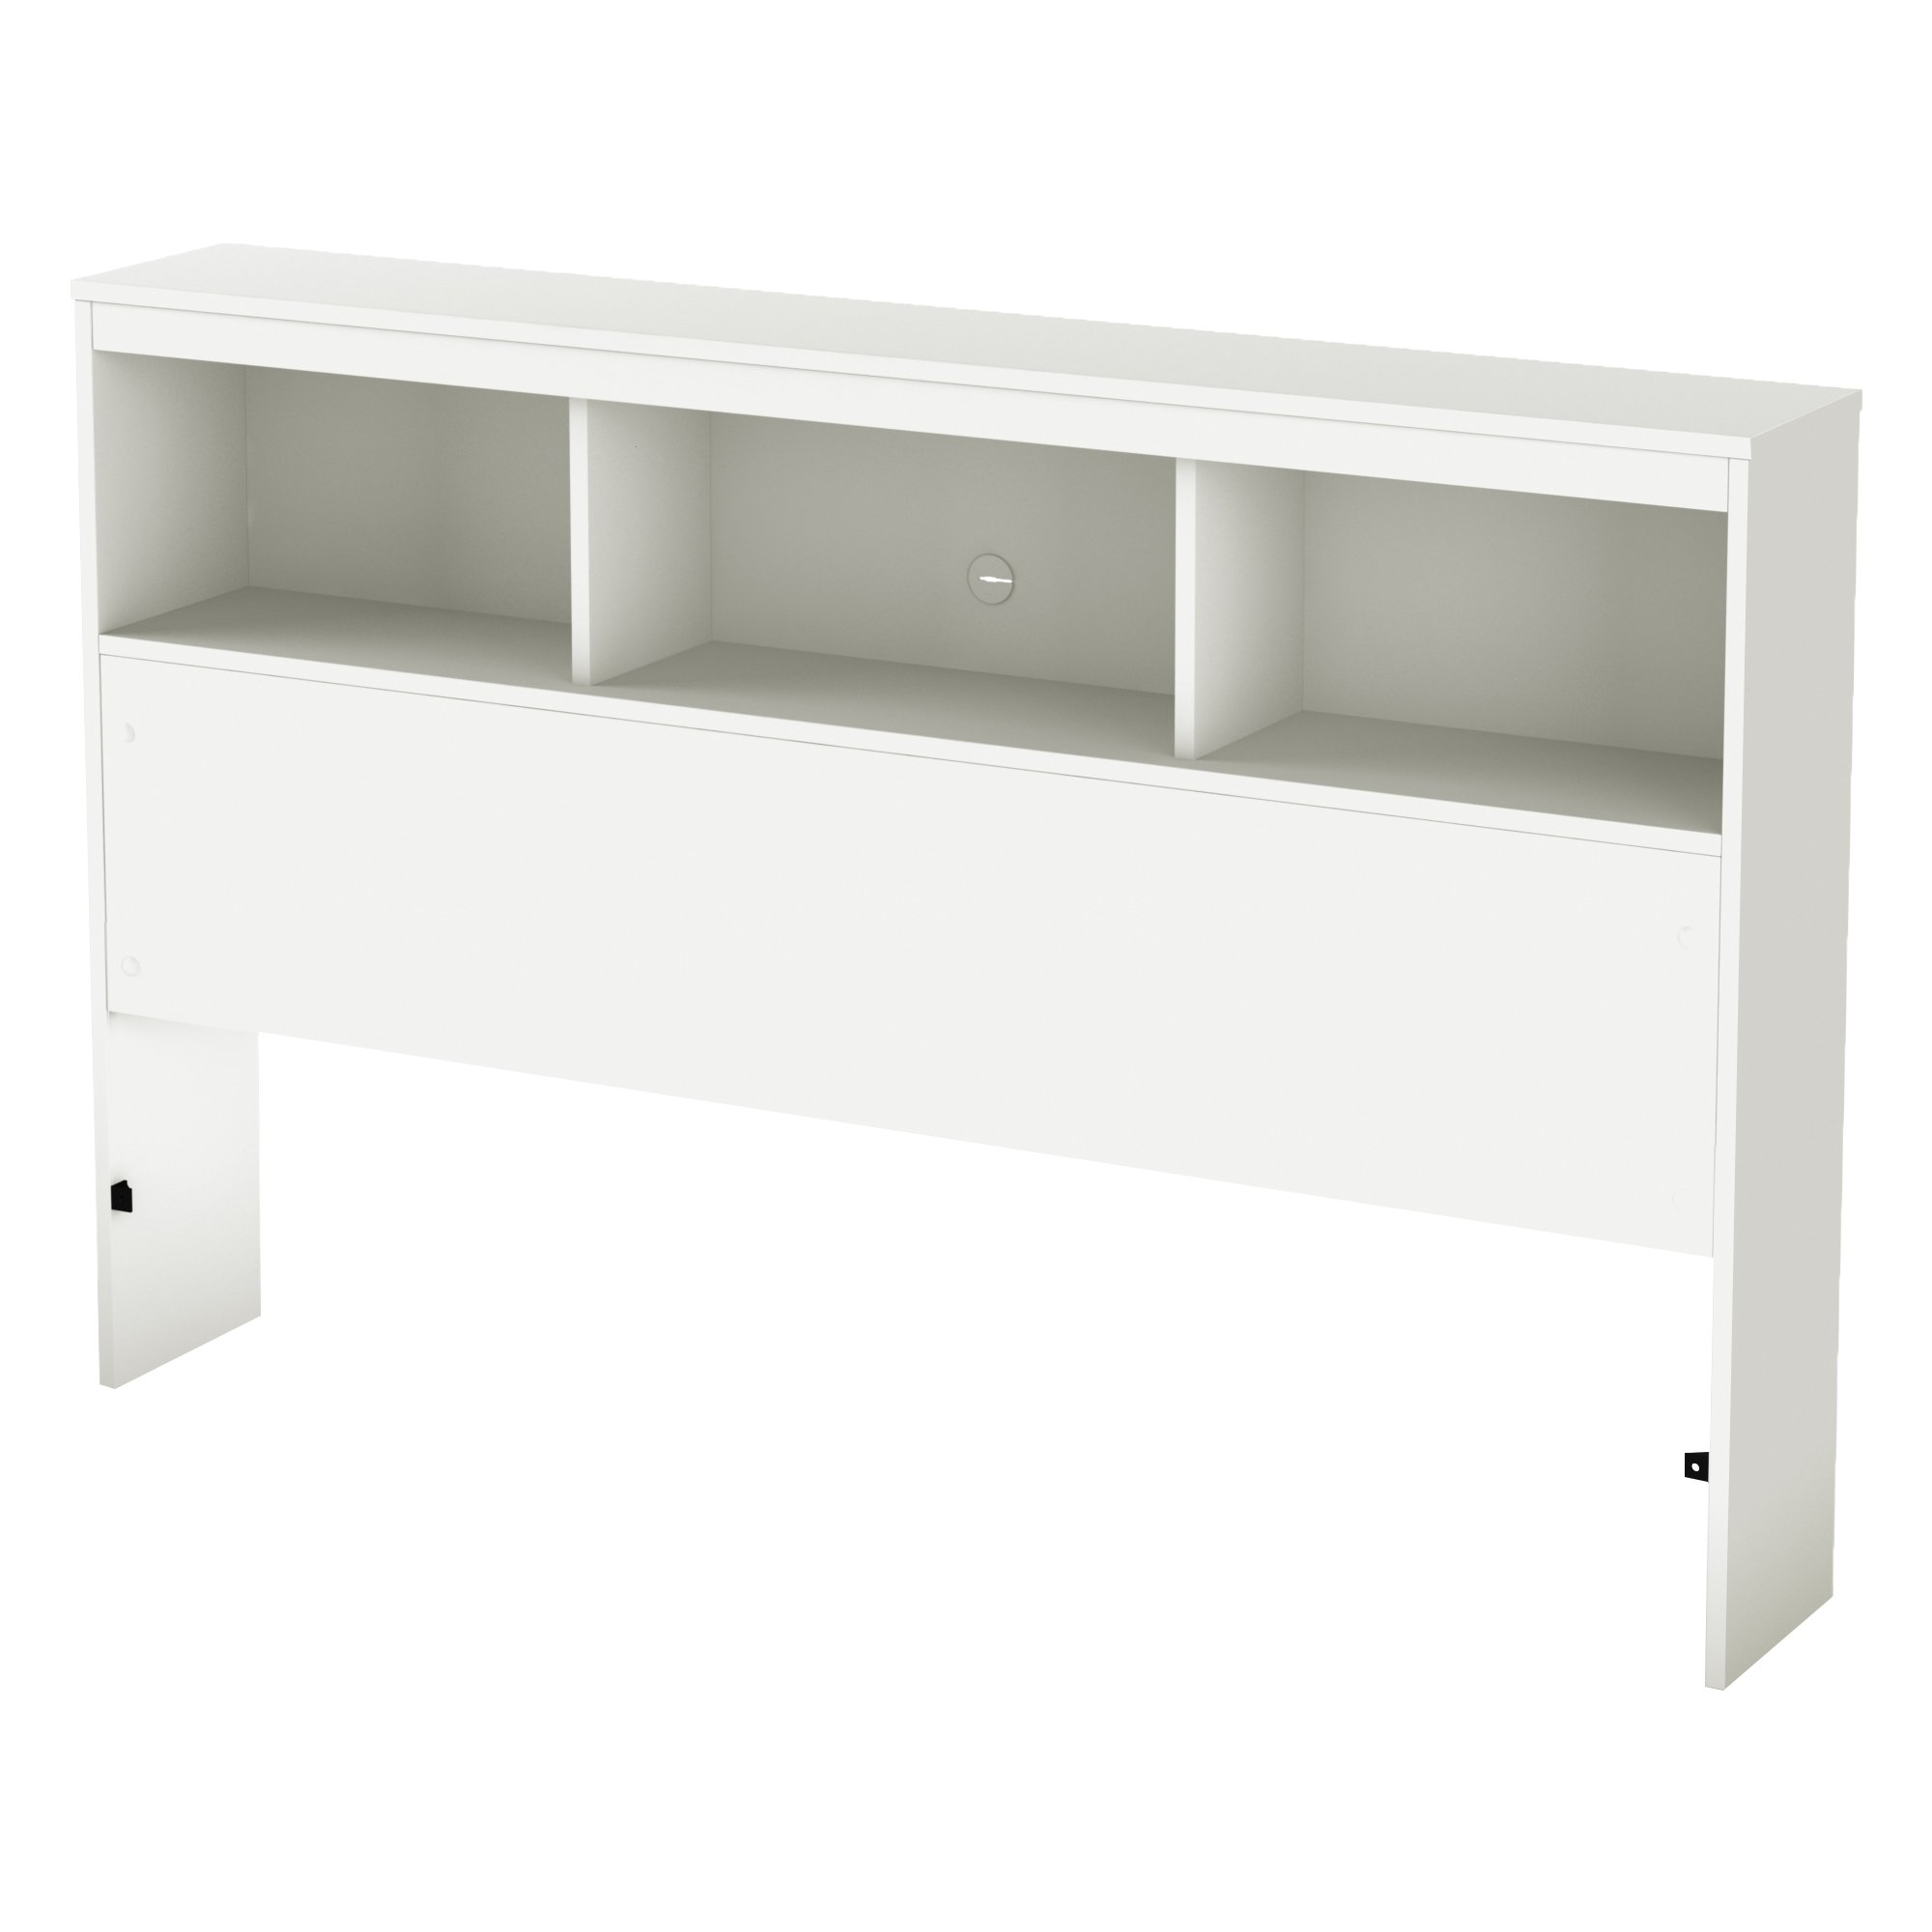 South Shore Furniture 54'' Karma Bookcase Headboard, Full, Pure White by South Shore